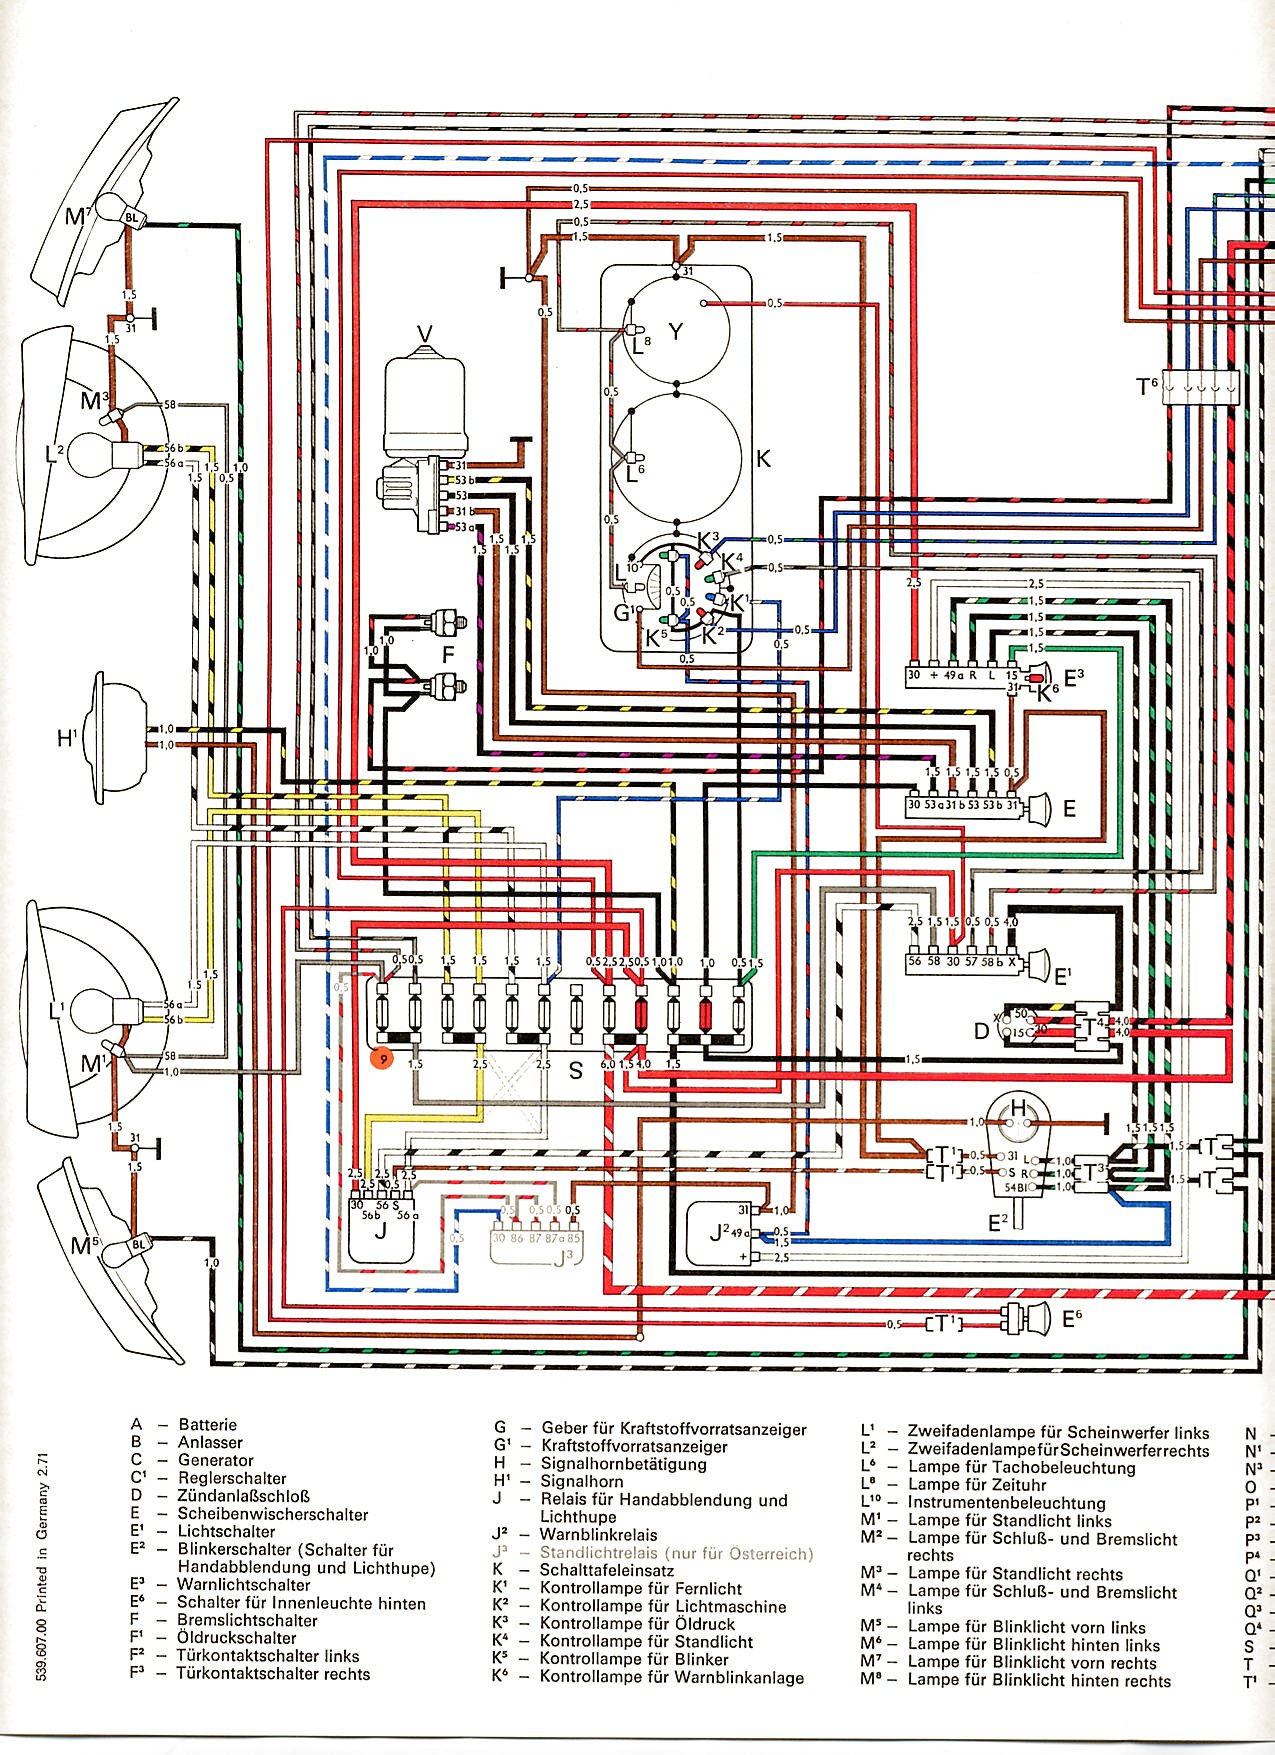 vintagebus com vw bus and other wiring diagrams rh vintagebus com 67 VW Beetle Wiring Diagram 64 Volkswagen Bug Wiring-Diagram